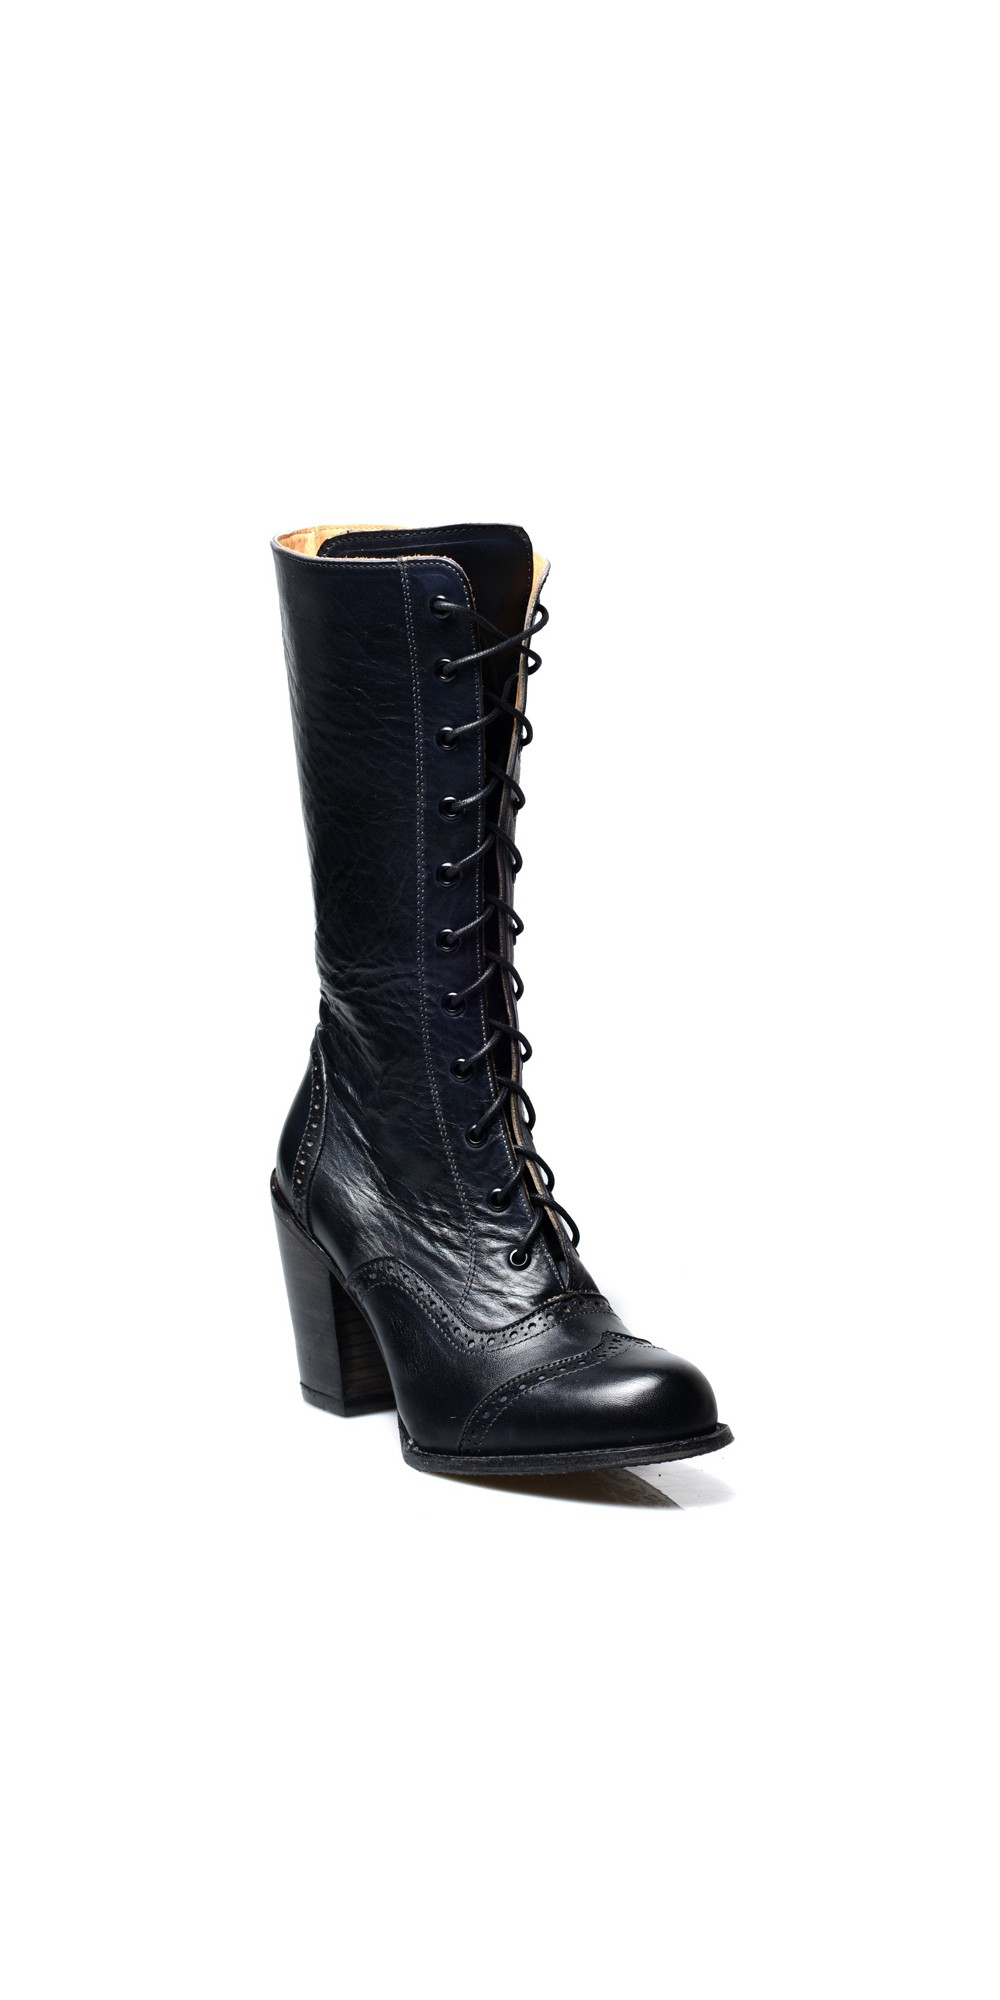 b28b2a61058c ... Ariana Victorian Inspired Mid-Calf Leather Boots in Black Rustic by Oak  Tree Farms ...